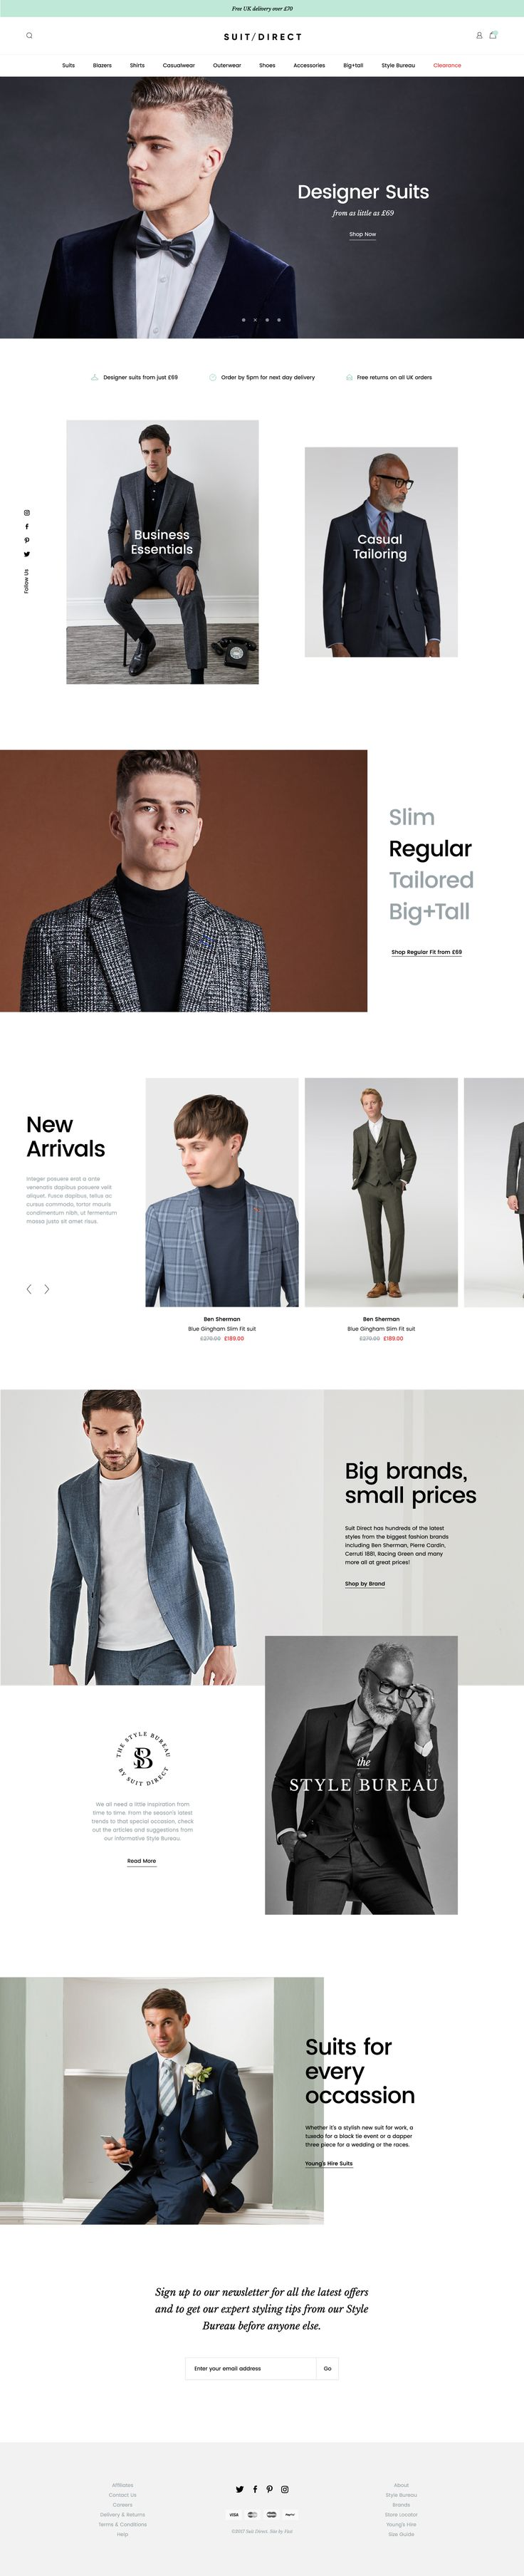 Suit Direct Website by Jordan Gilroy | dribbble